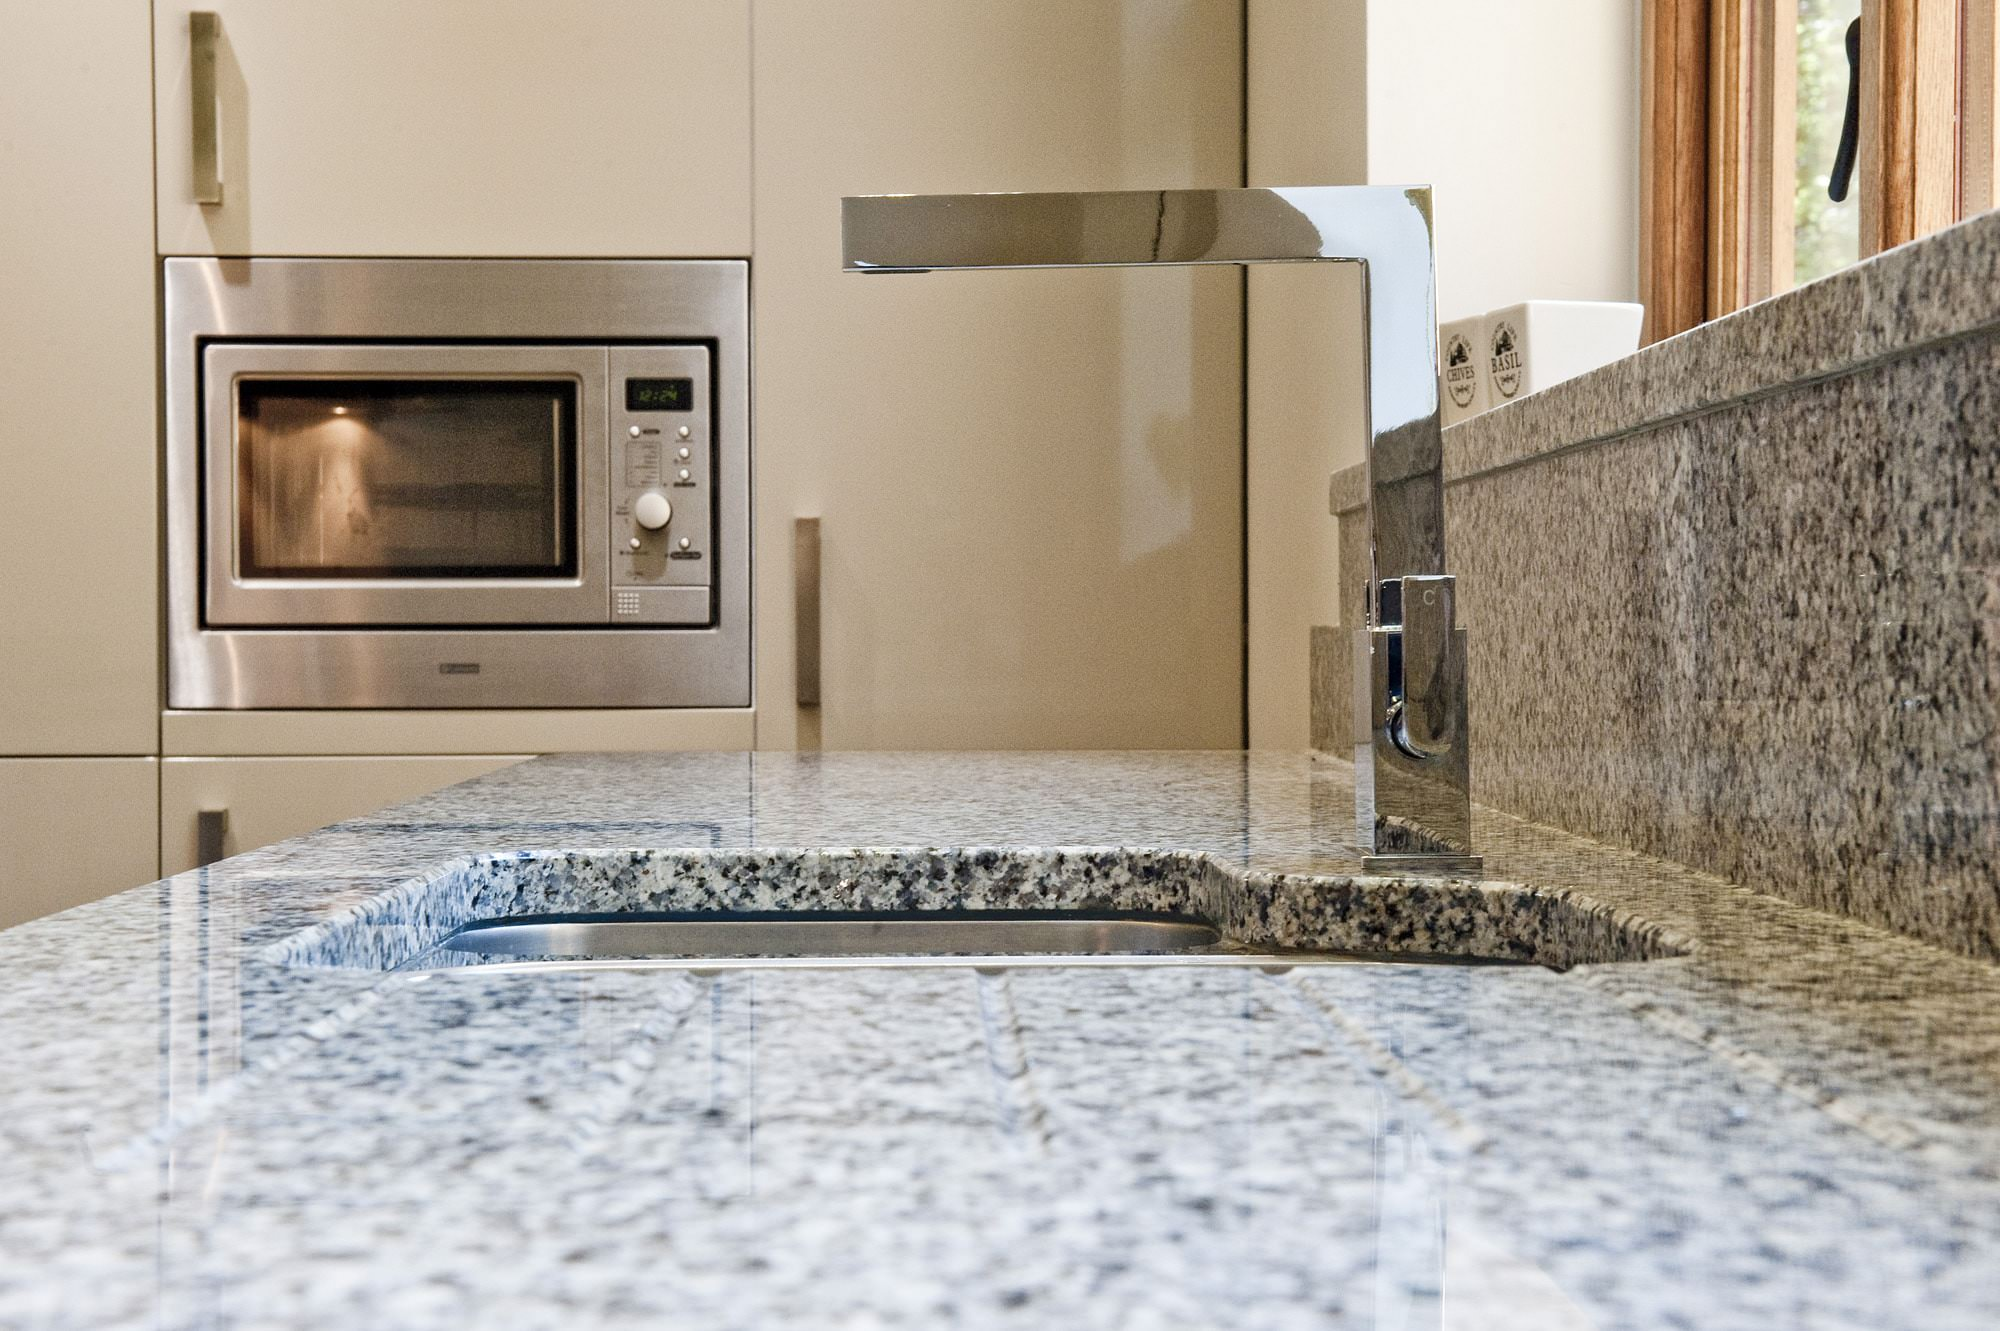 azul-platino-granite-east-grinstead-122949-a-sink-and-tap-min